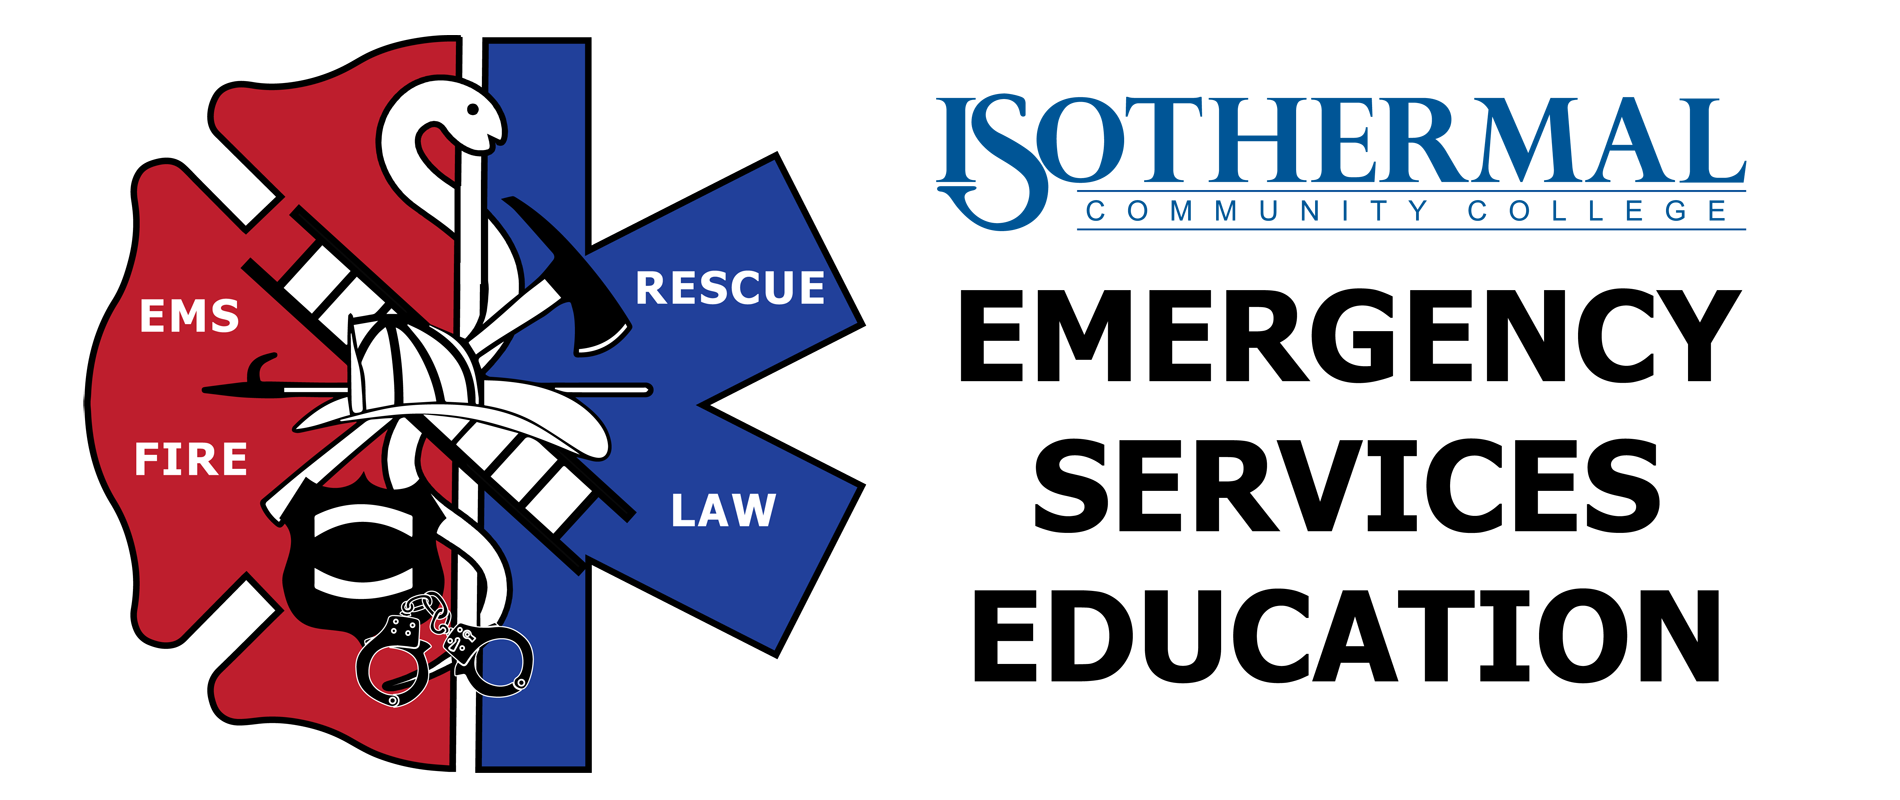 emergency services classes continuing education isothermal